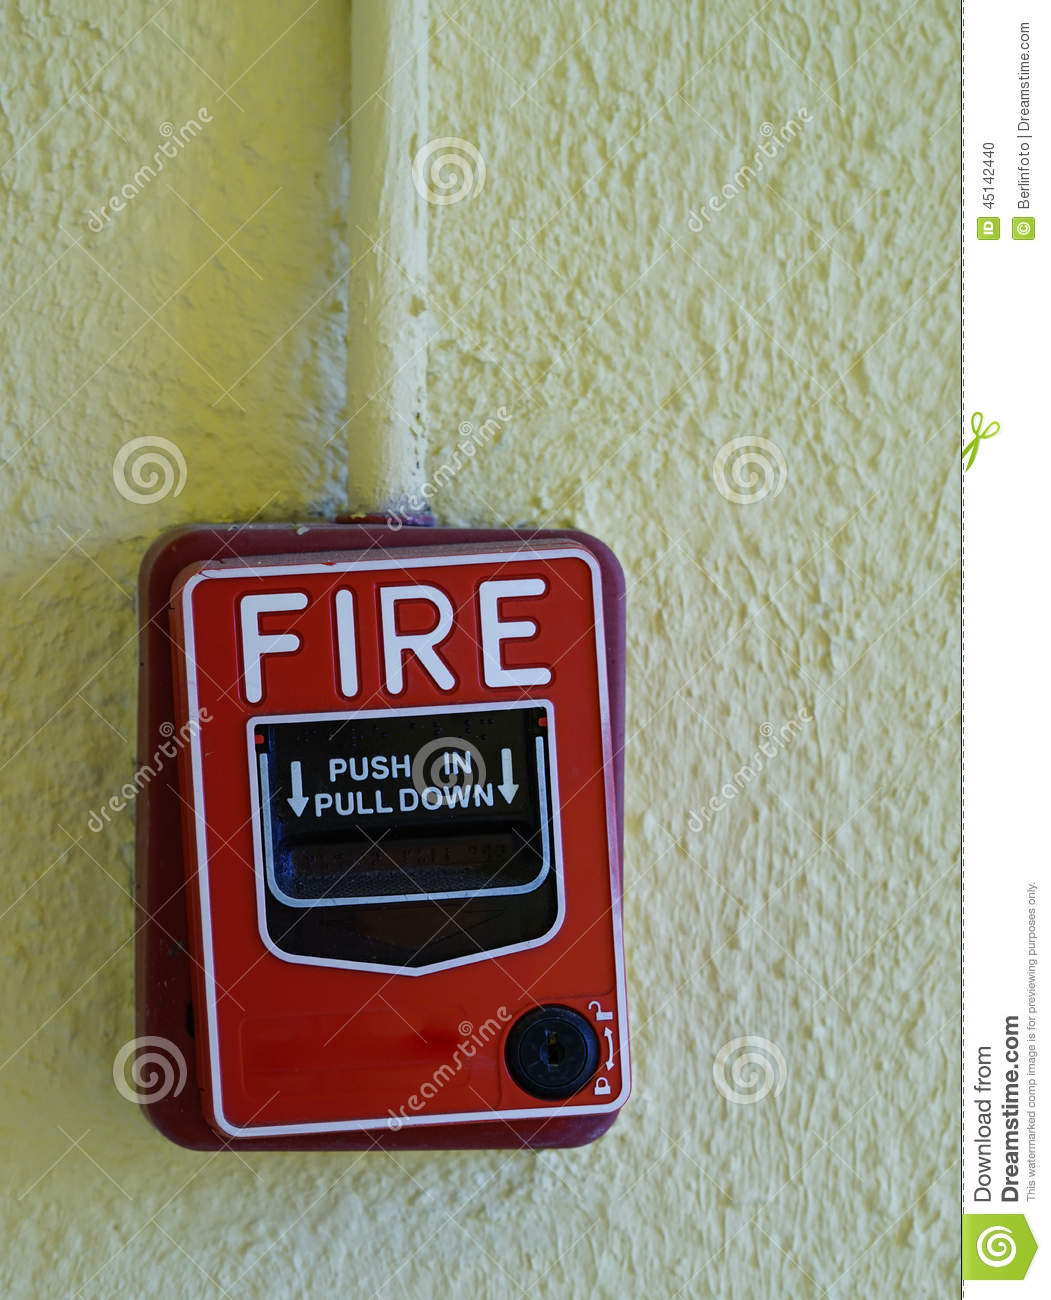 143 Reczny Ostrzegacz Pozarowy Rop A together with Crisis Management Manual 3898433 furthermore Controlpanel also Stock Photo Fire Alarm Pull Station Image45142440 besides Simplex 4100u Wiring Diagram. on manual fire alarm activation